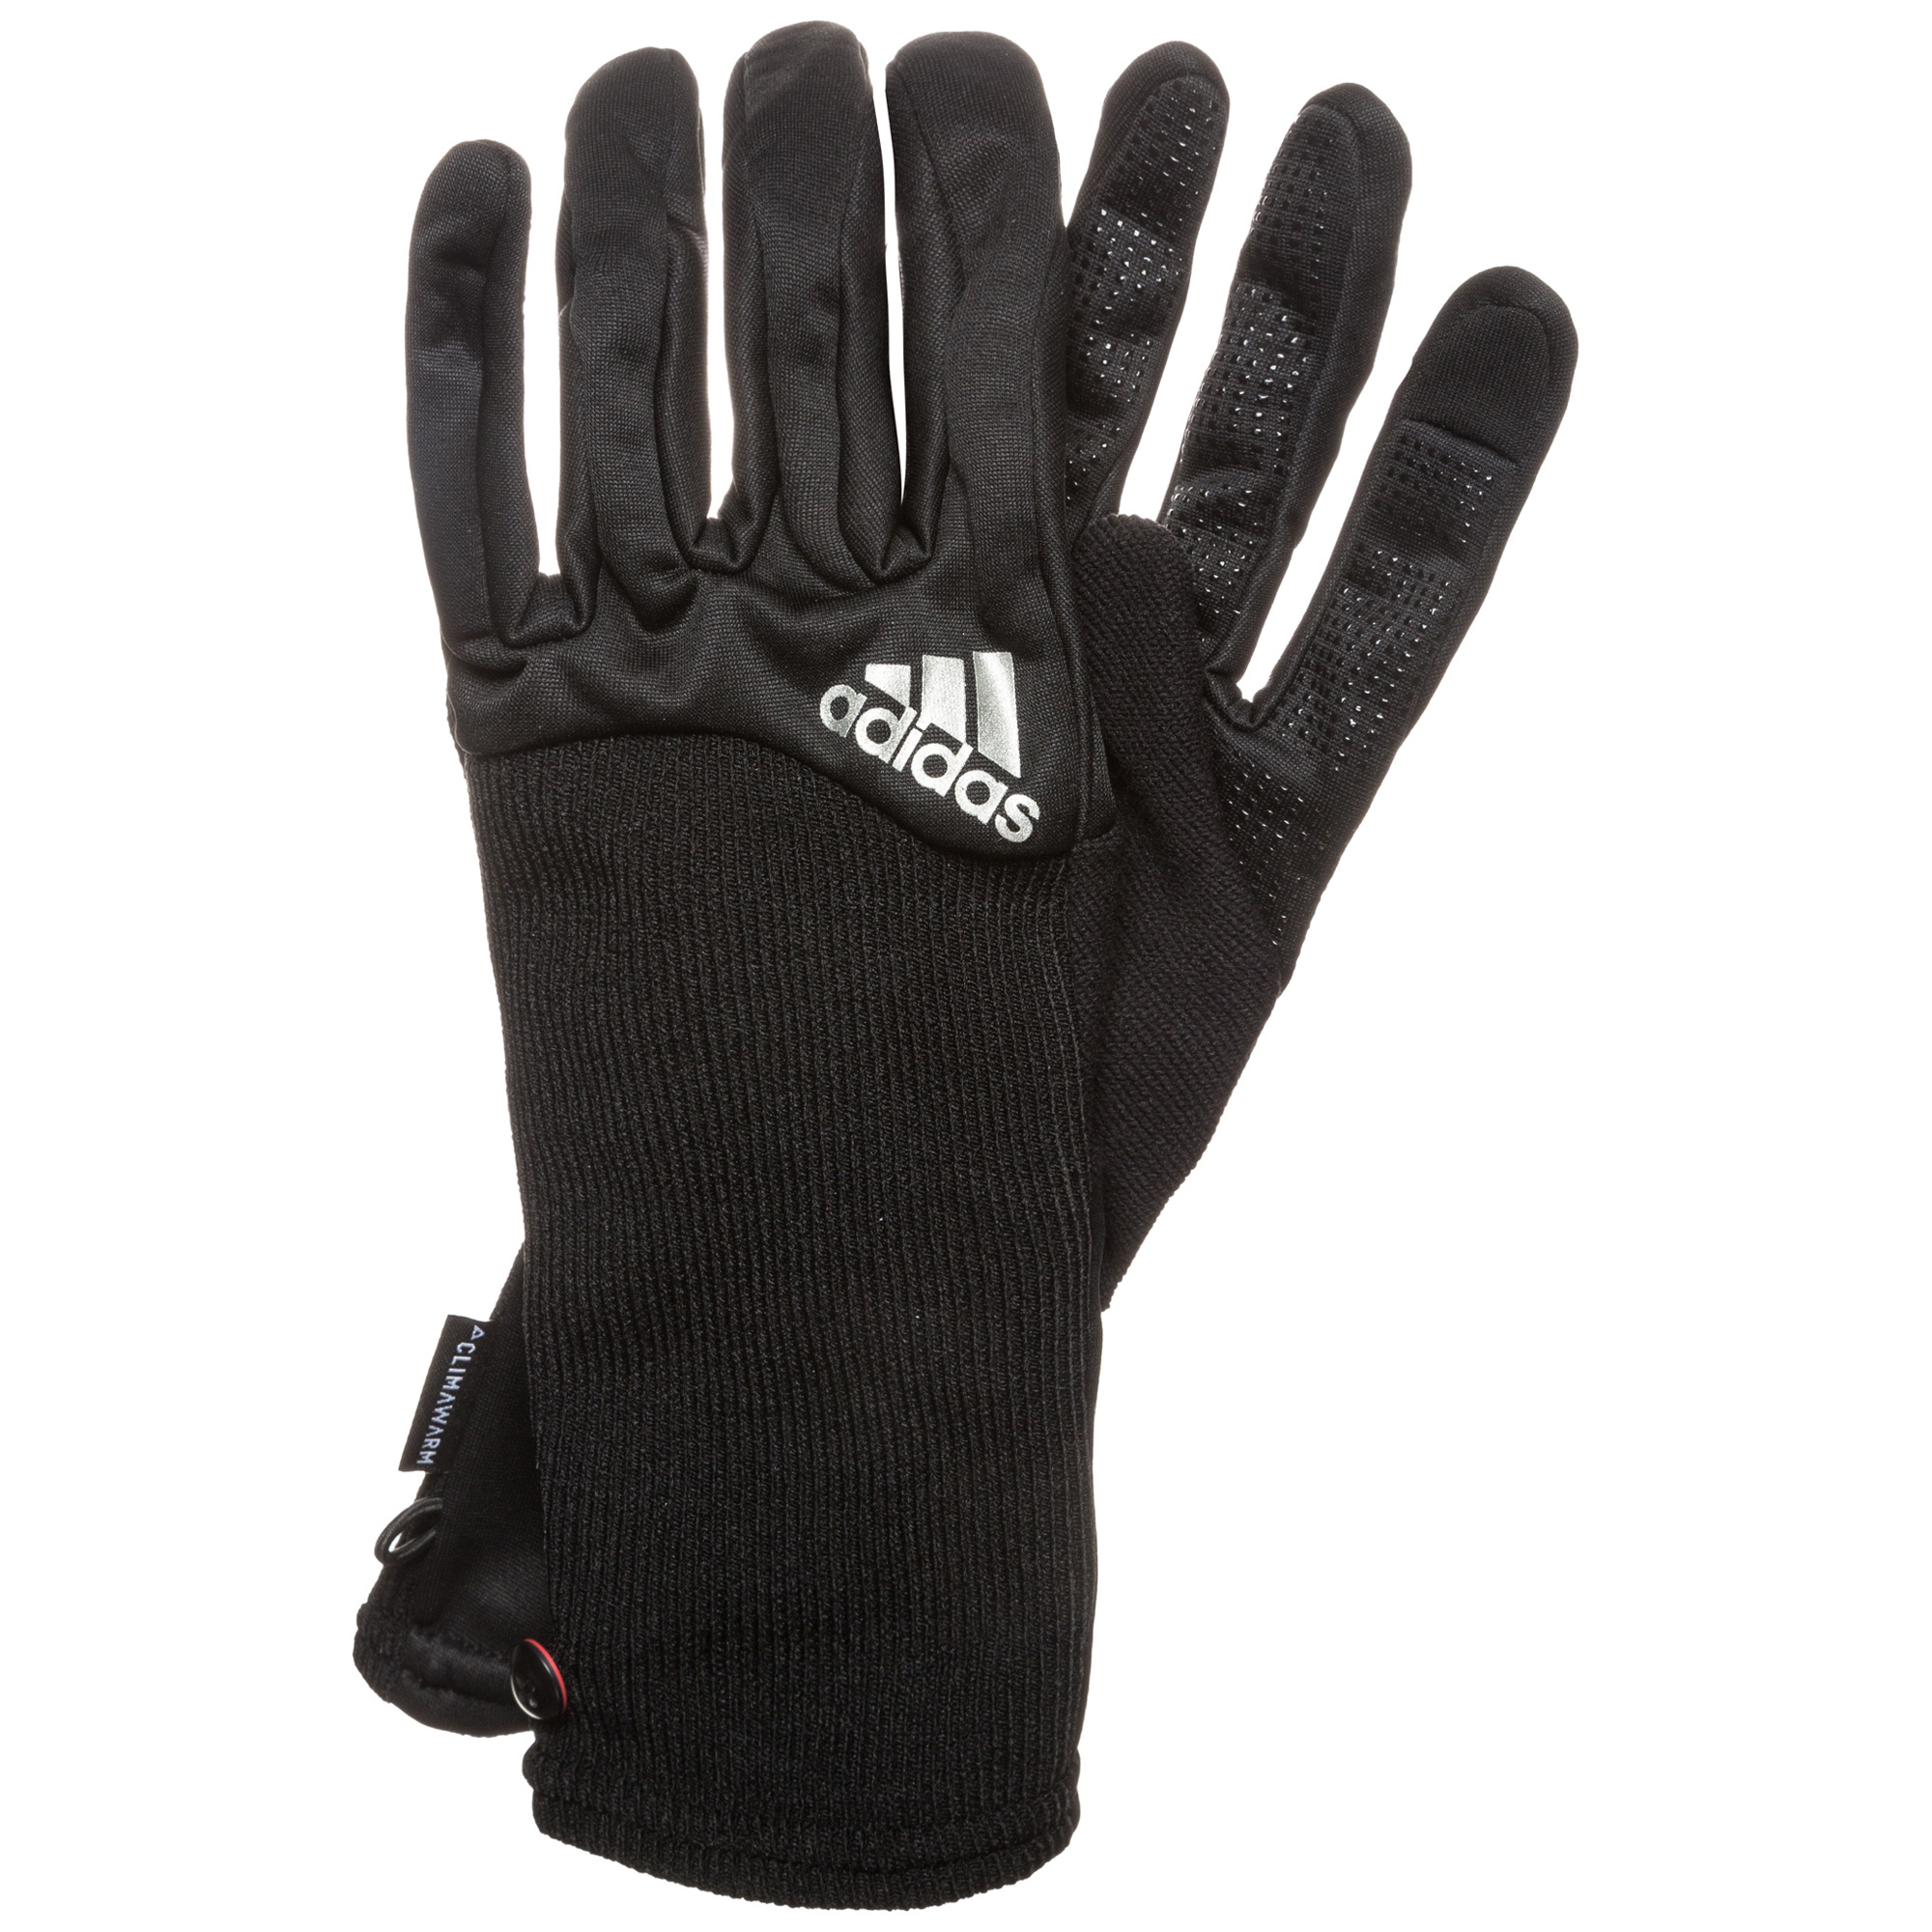 Перчатки для бега Adidas Climawarm - Black / Ray Red / Silver Met